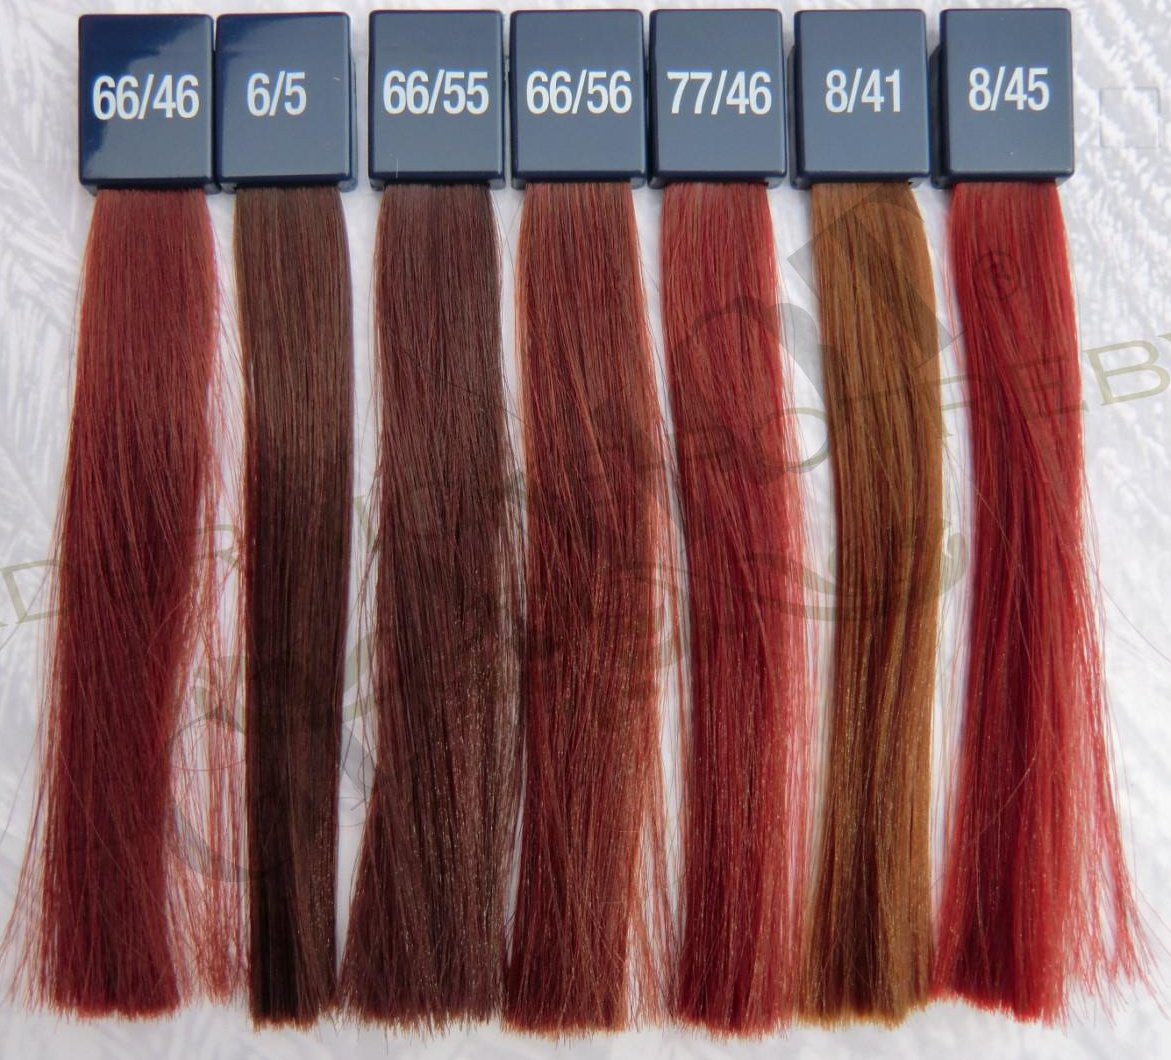 wella colour chart reds pictures: Shadesofredhaircolor 666 intense red pinterest hair co of 22